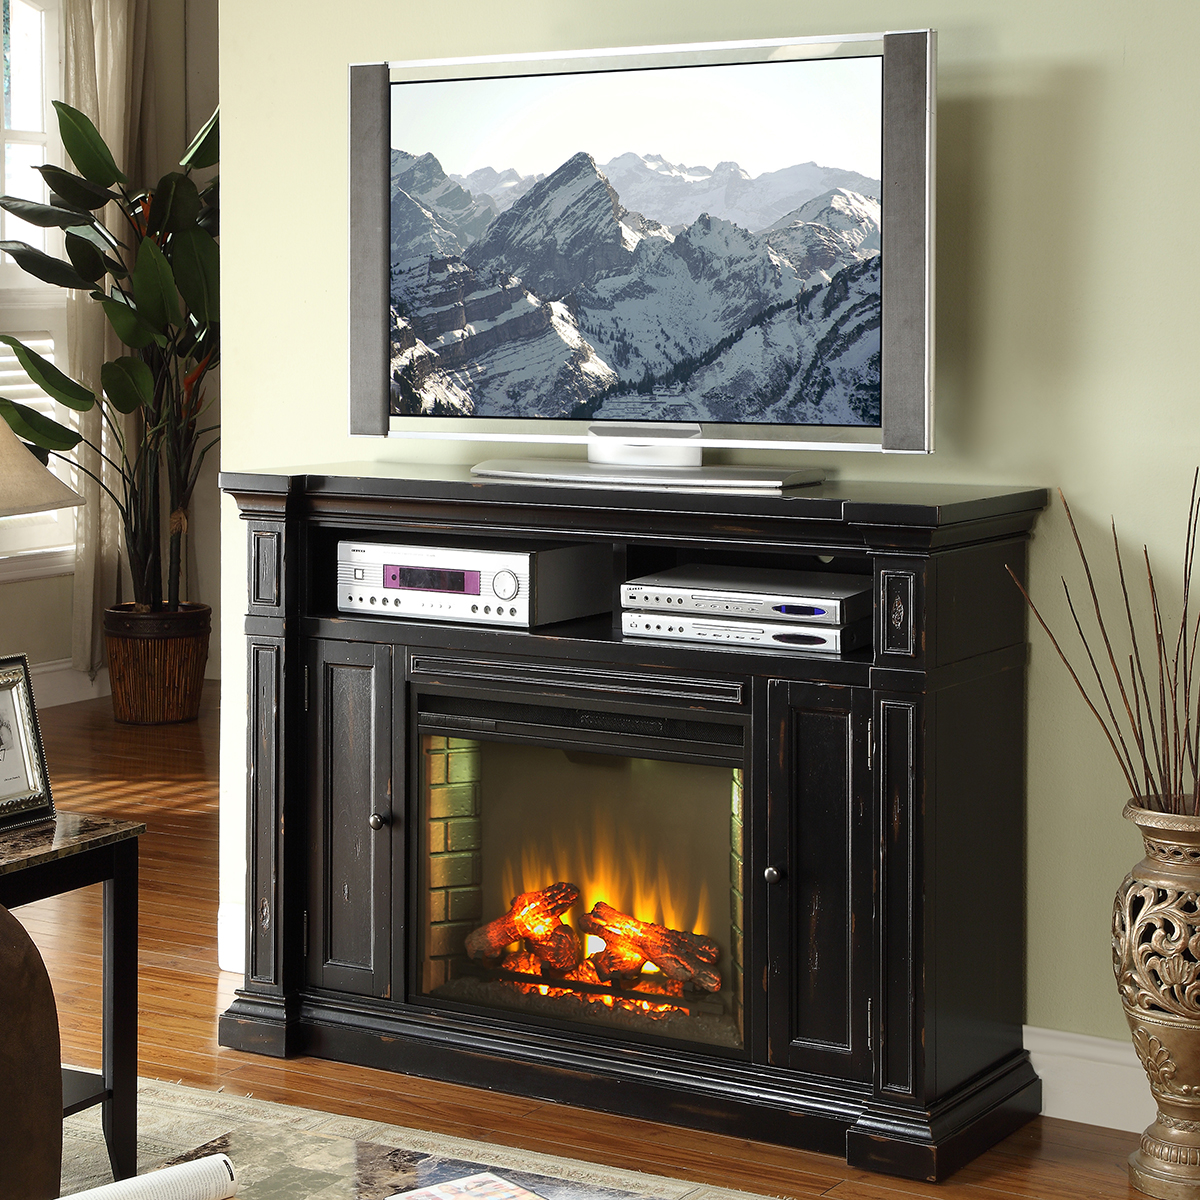 "Bobs Fireplace Tv Stand Beautiful Manchester 58"" Fireplace Media Center Tv Stand Mantel In"